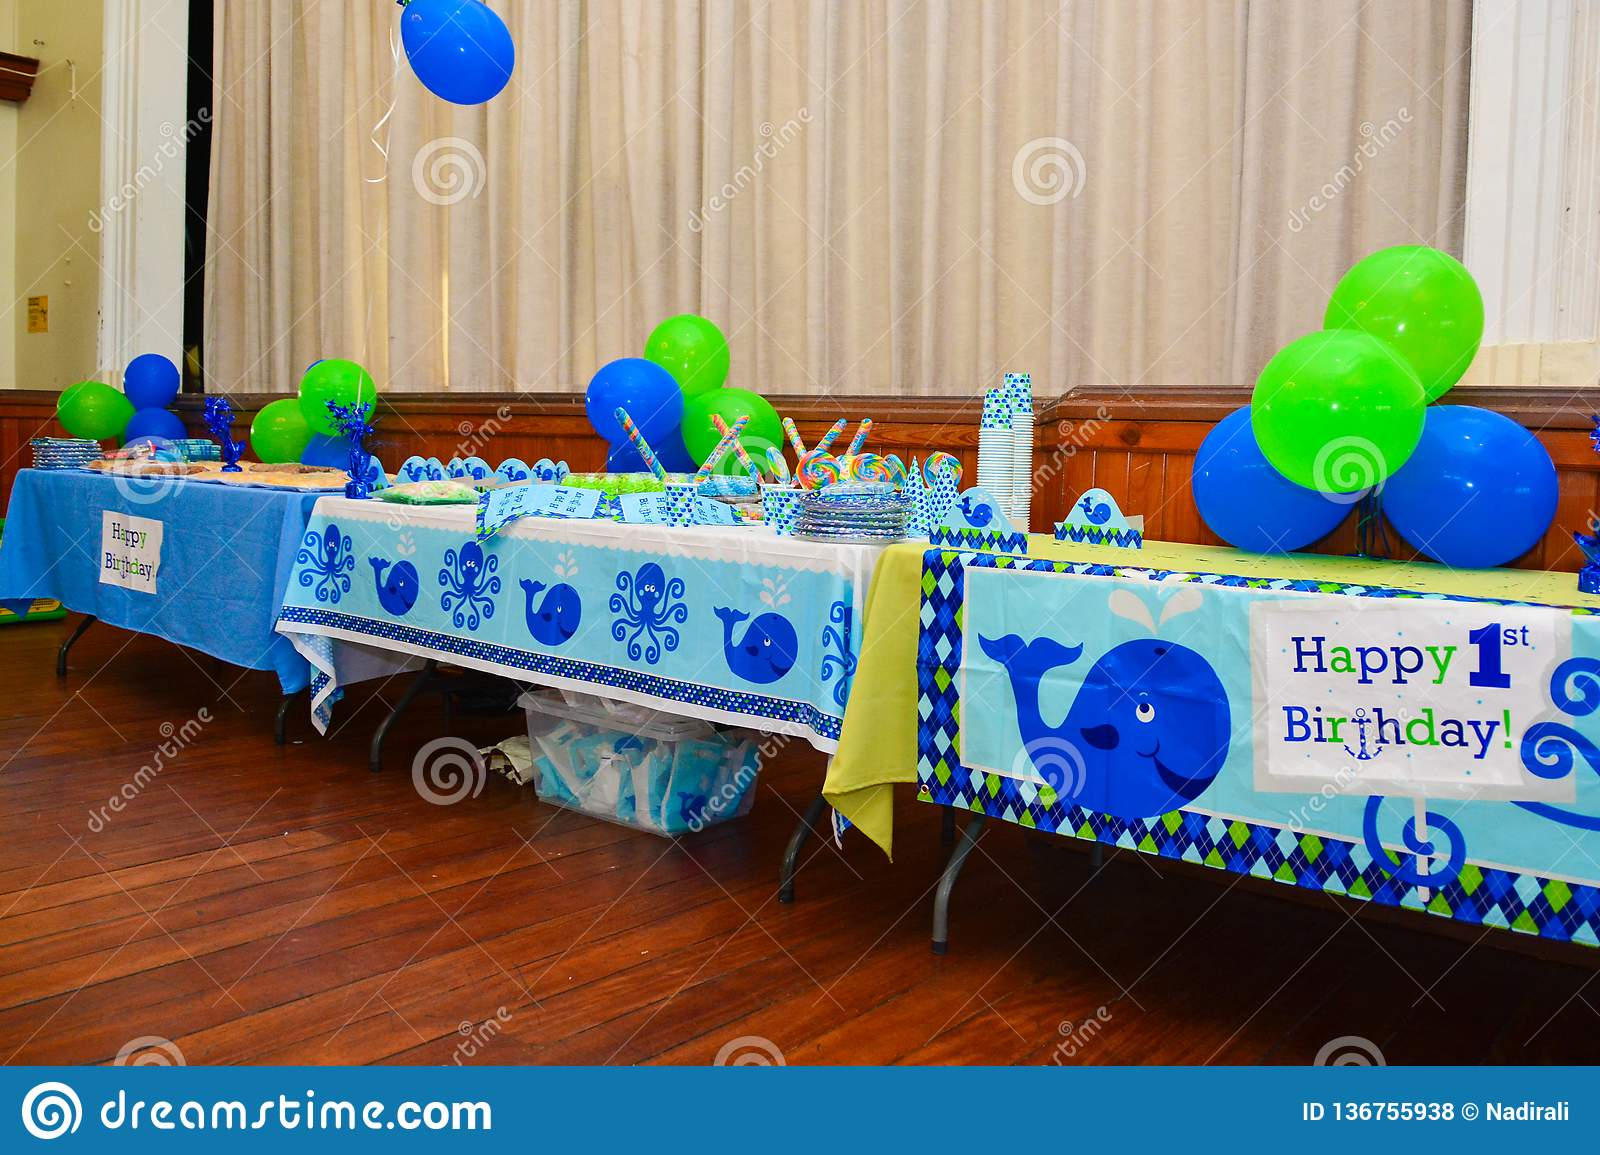 Birthday Party Decorations For A One Year Old Boy